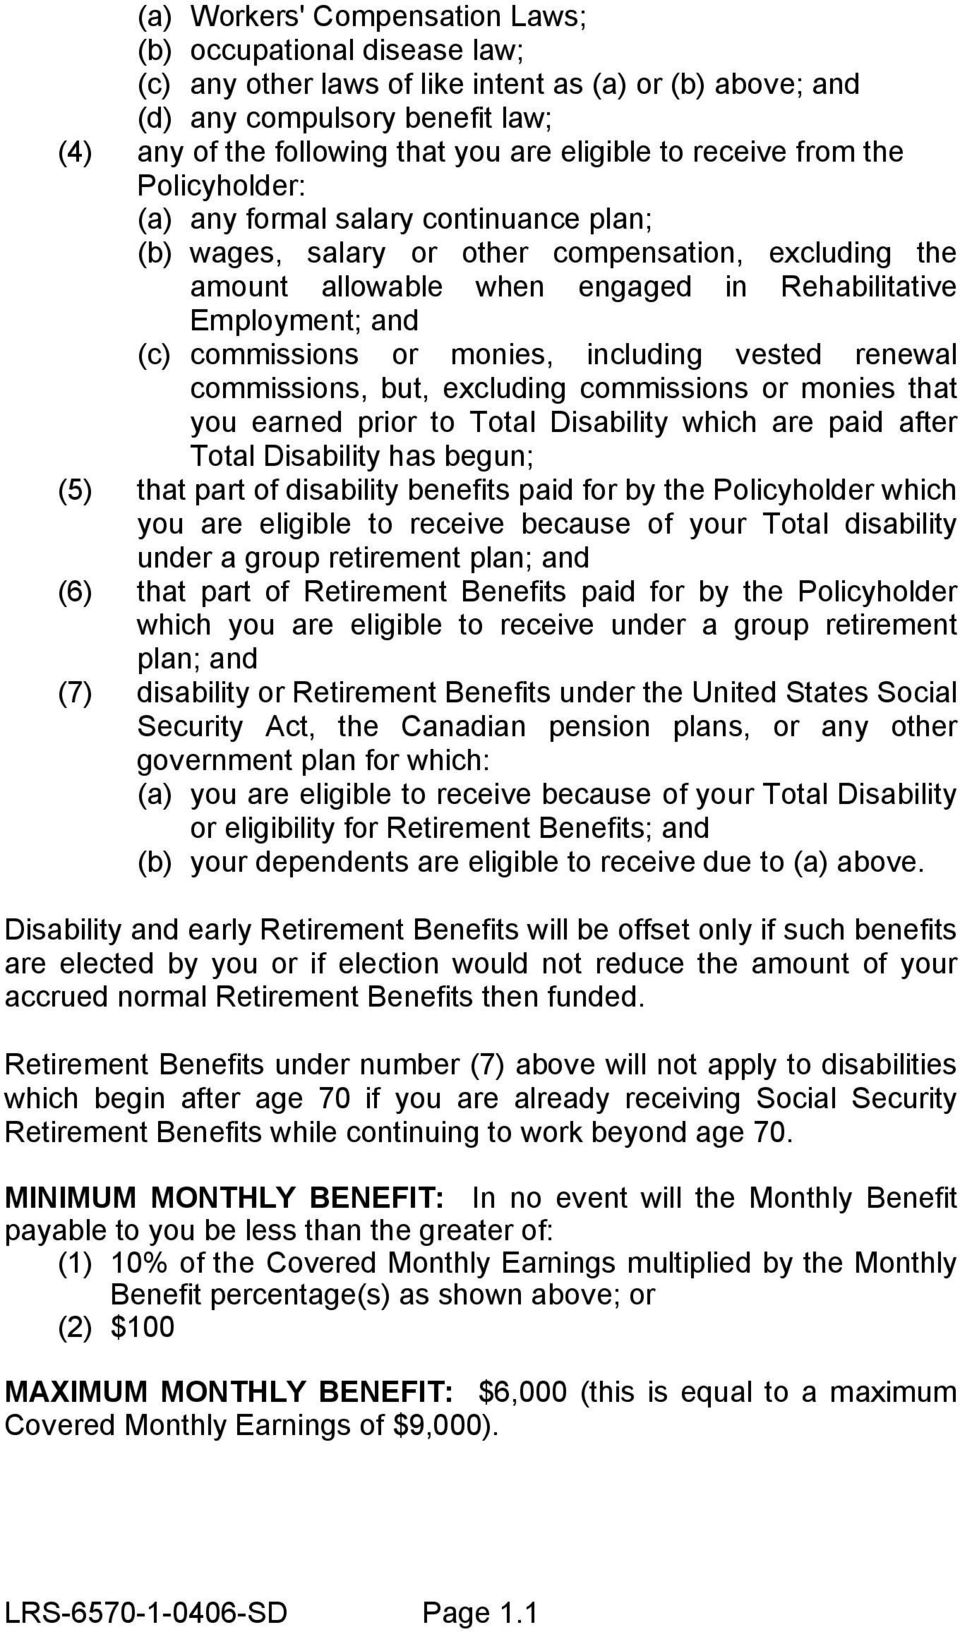 commissions or monies, including vested renewal commissions, but, excluding commissions or monies that you earned prior to Total Disability which are paid after Total Disability has begun; (5) that